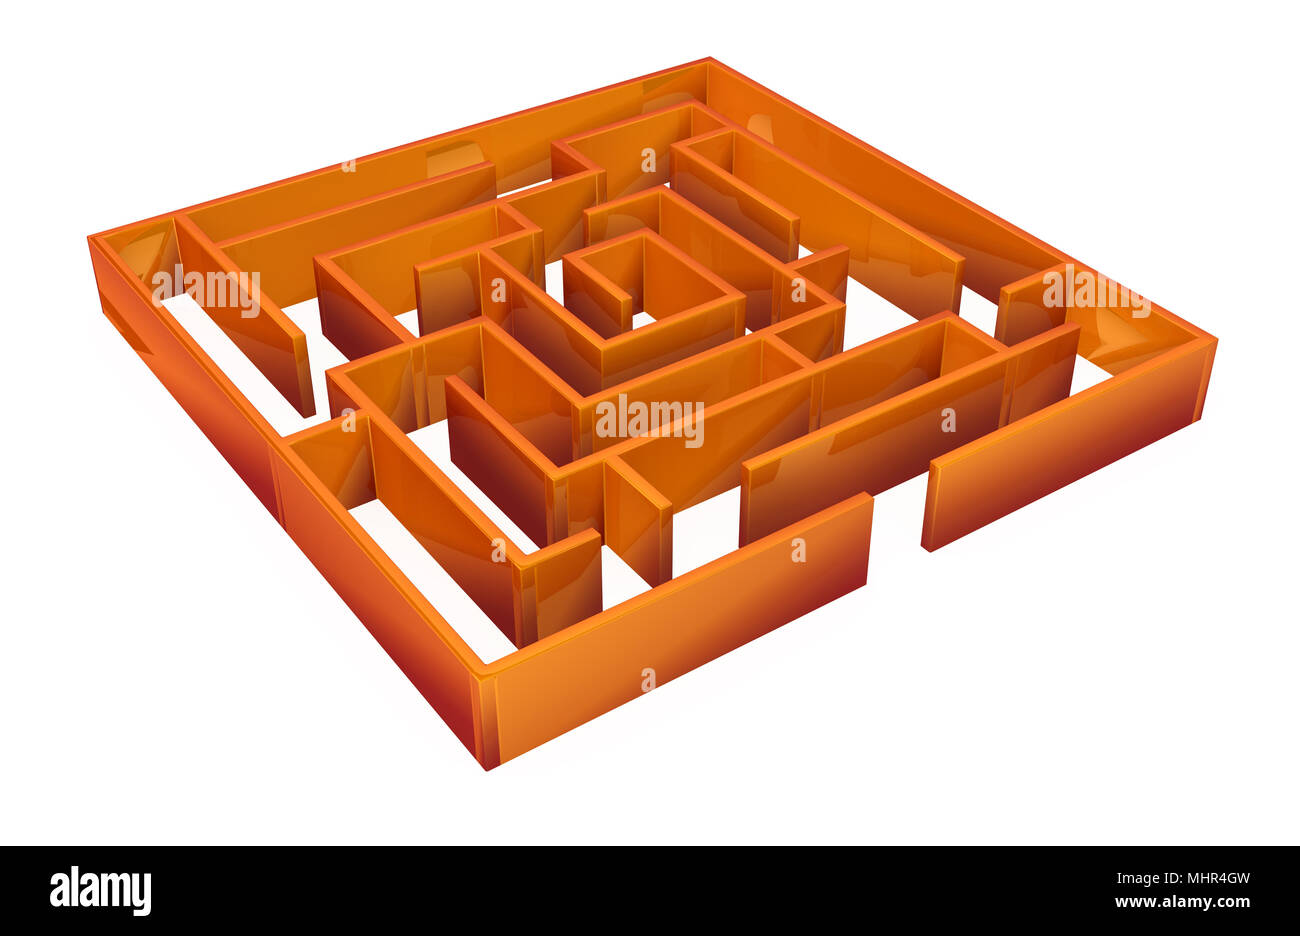 Square 3d labyrinth model, over white, isolated - Stock Image